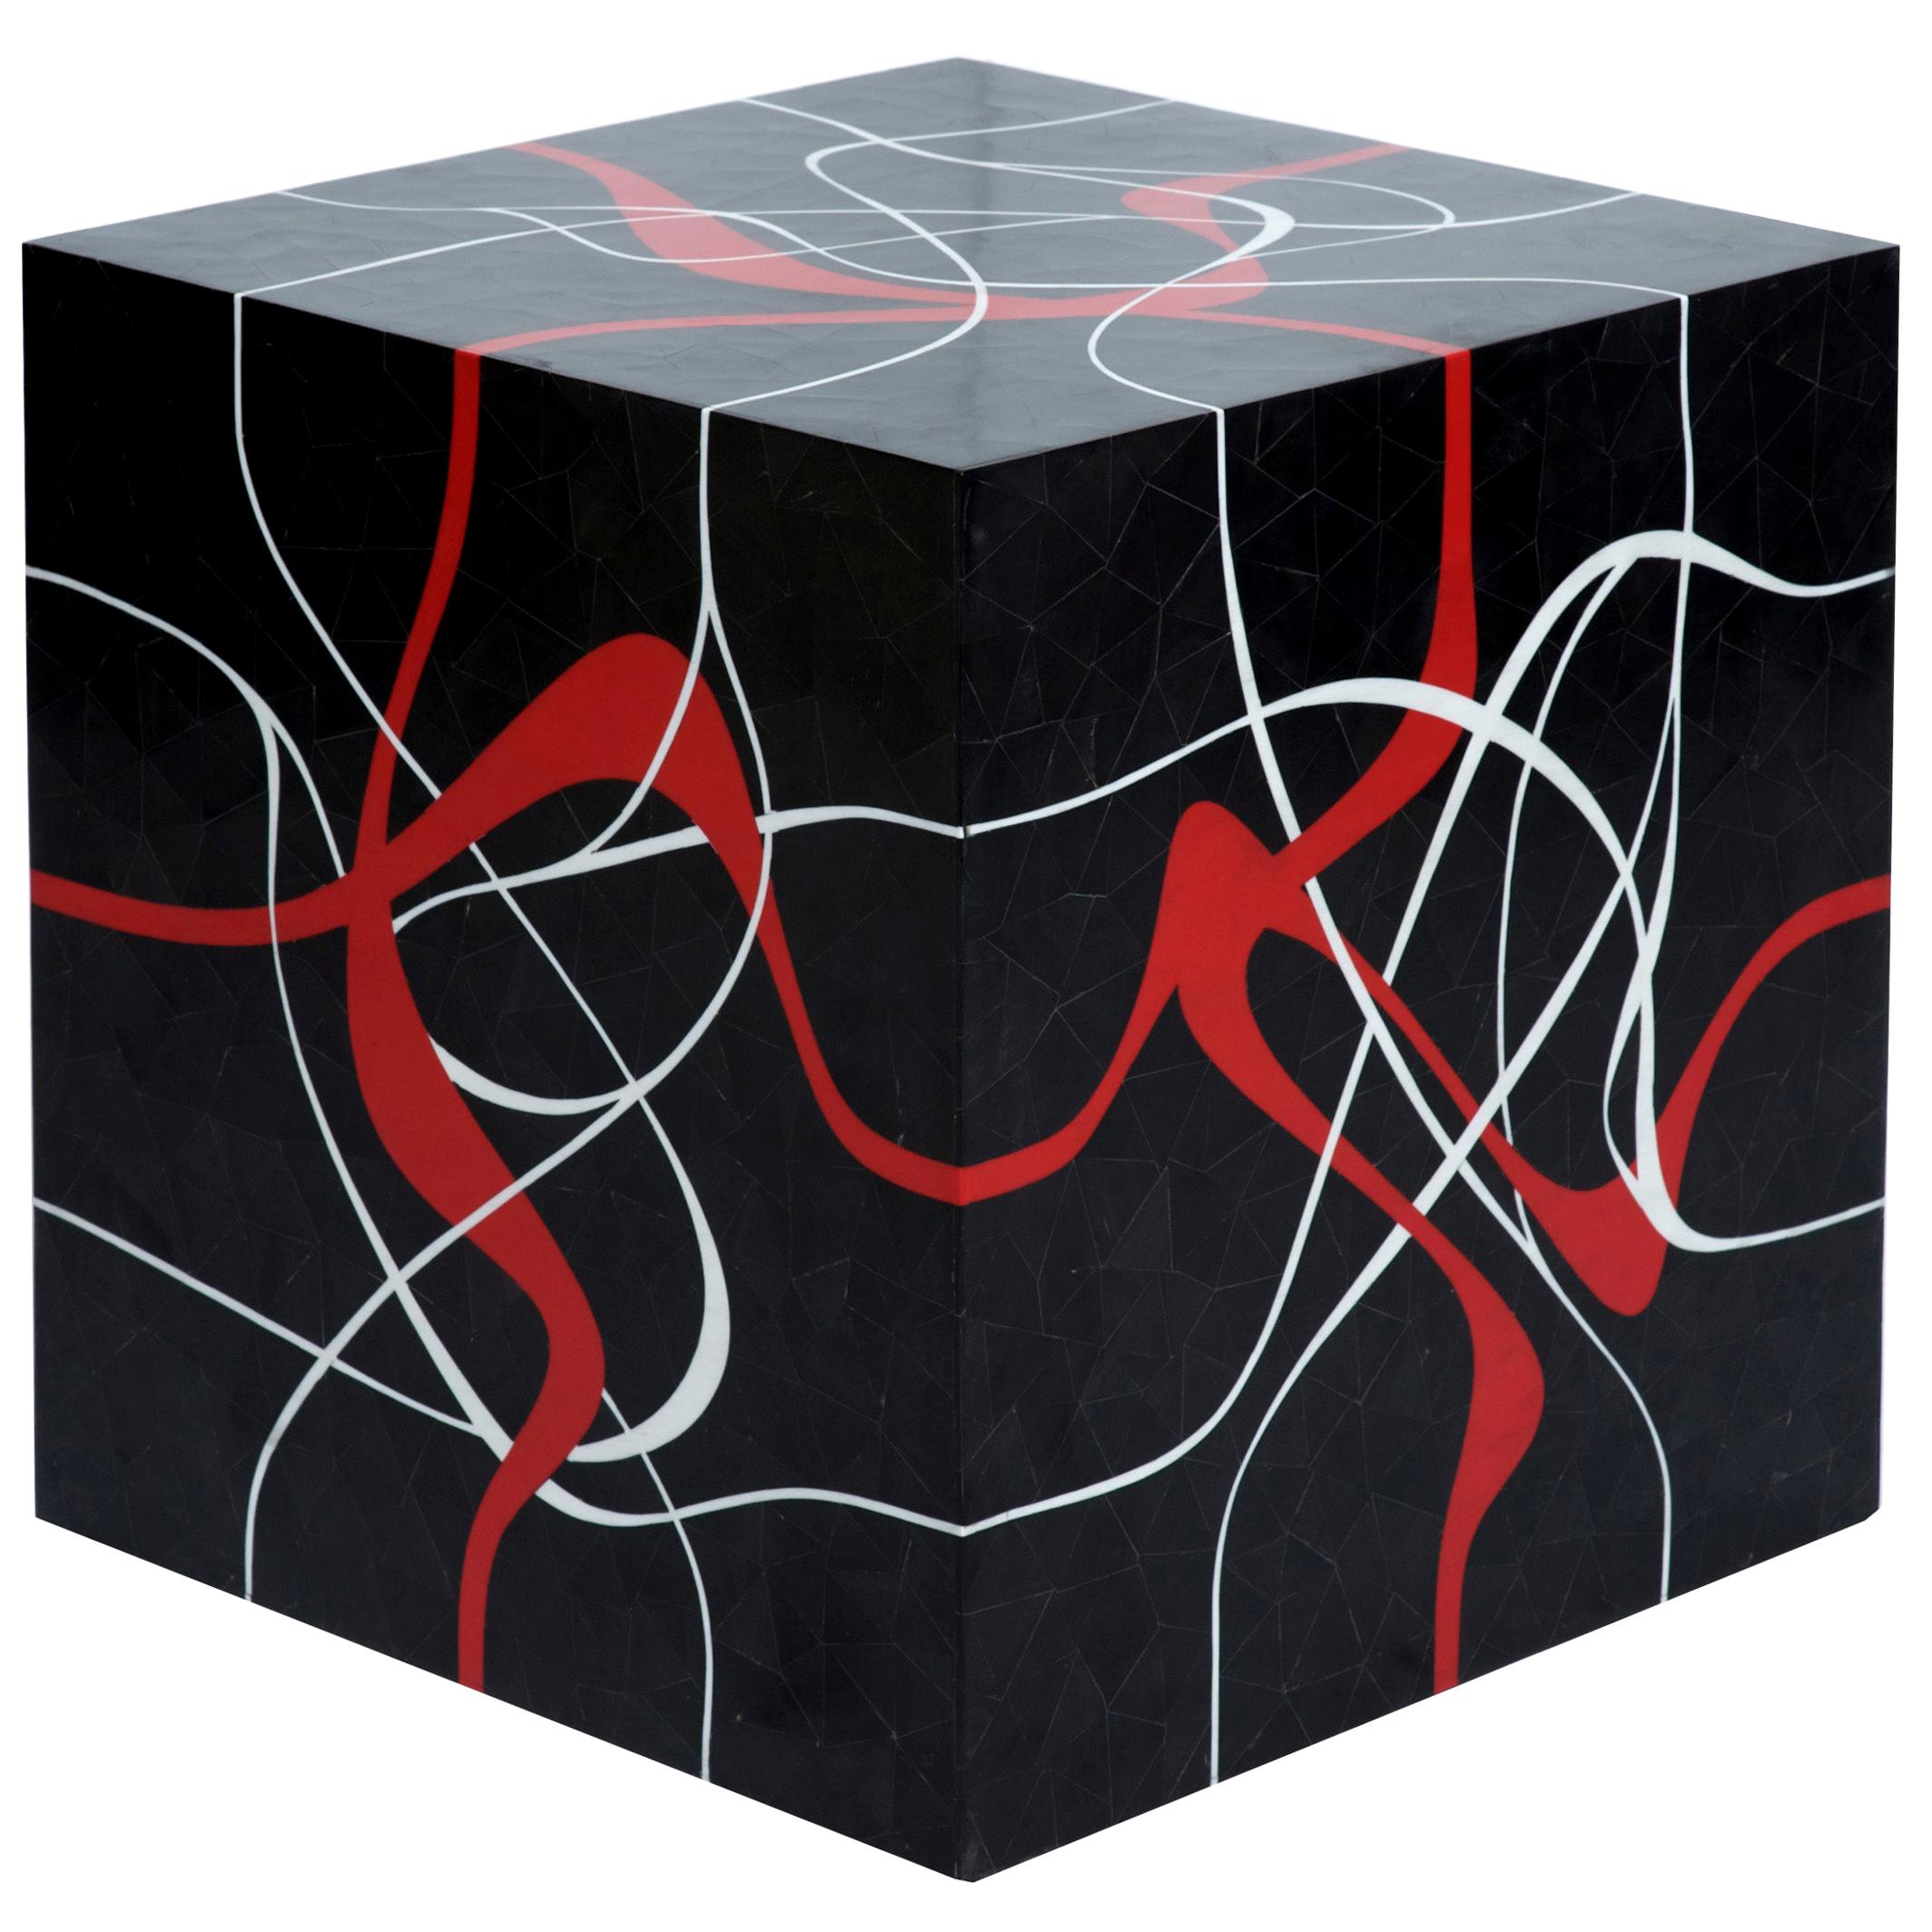 Modern Cube Table in tessellated Horn with GraphicRed & Grey Resin Inlay- Dune